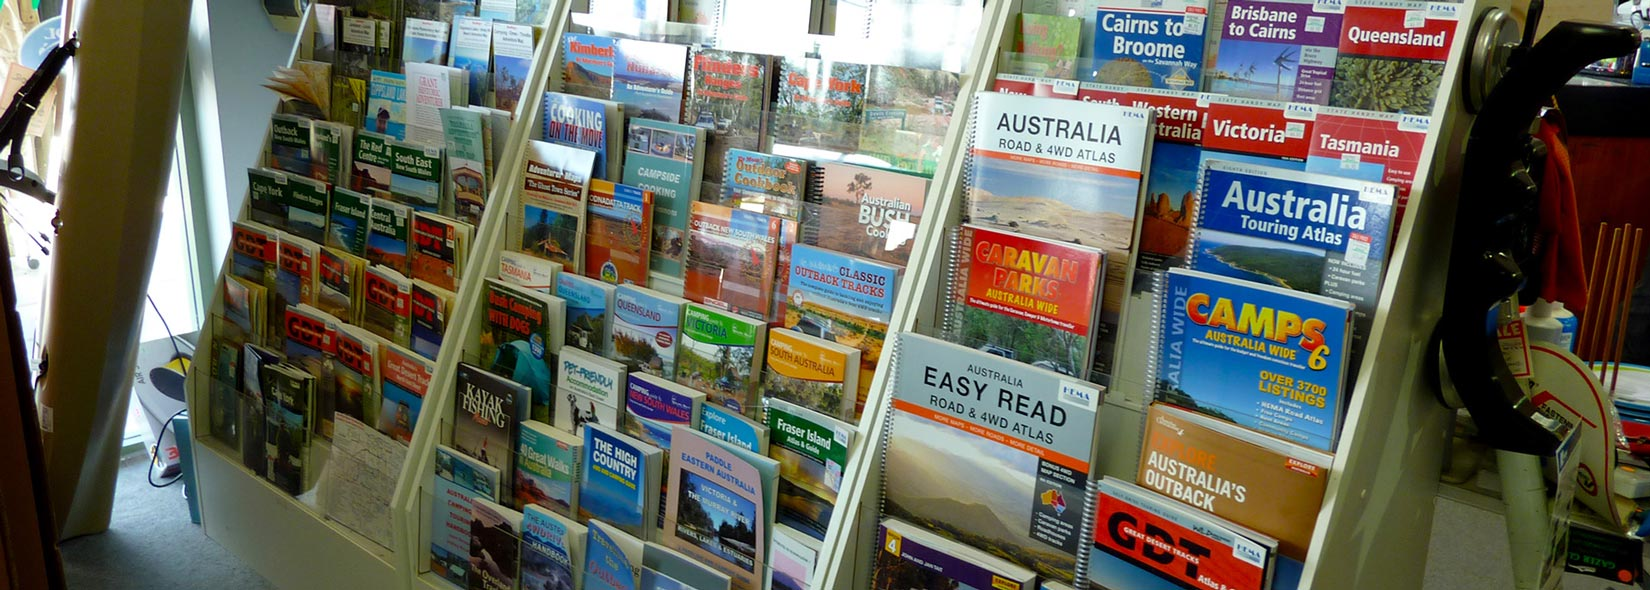 Maps and Tourism Books